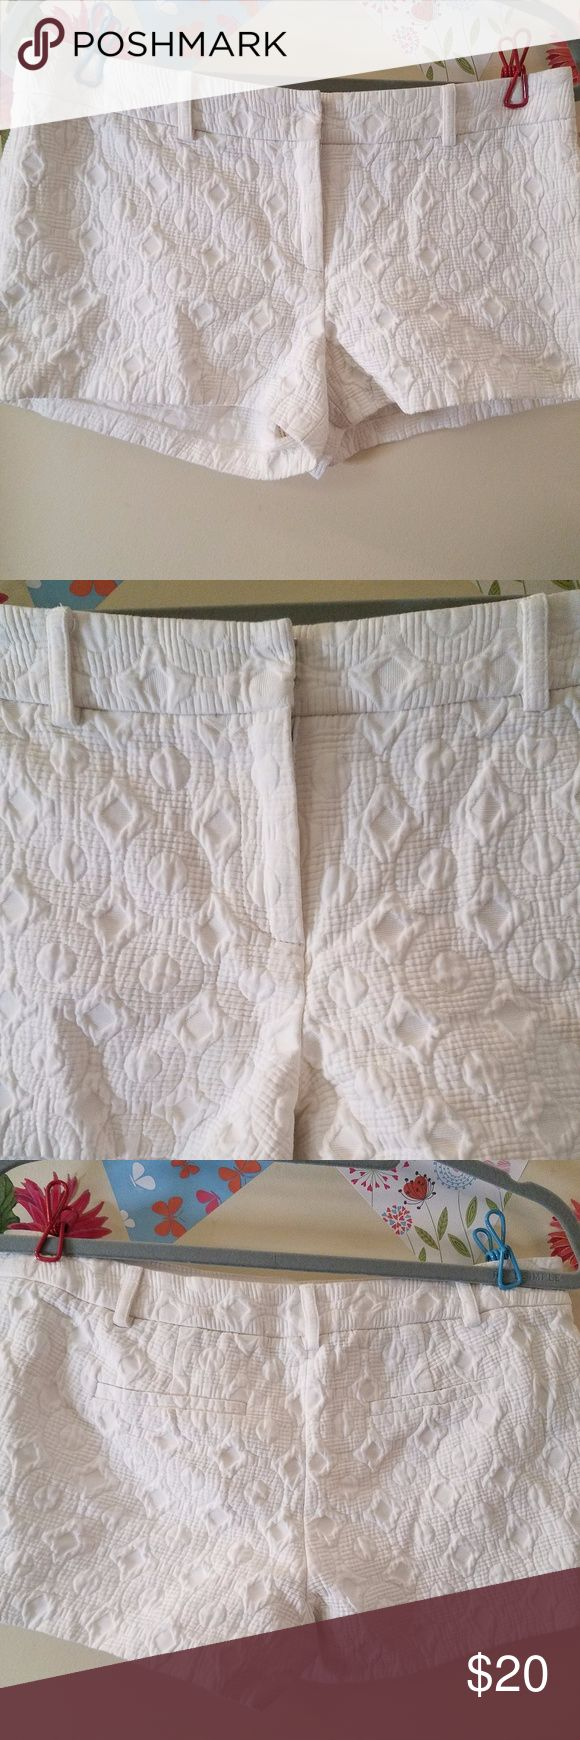 "Milly New York Quilted Zip Up Shorts 4 EUC Milly New York Quilted Zip Up Shorts Women White Cotton 4 Excellent Used Condition   Beautiful soft quilted shorts   Measurements:  Length: 10.5"" in Waist: 16""  in Hem: 11"" in   Thank you for looking!  UC- S01 Milly Shorts"